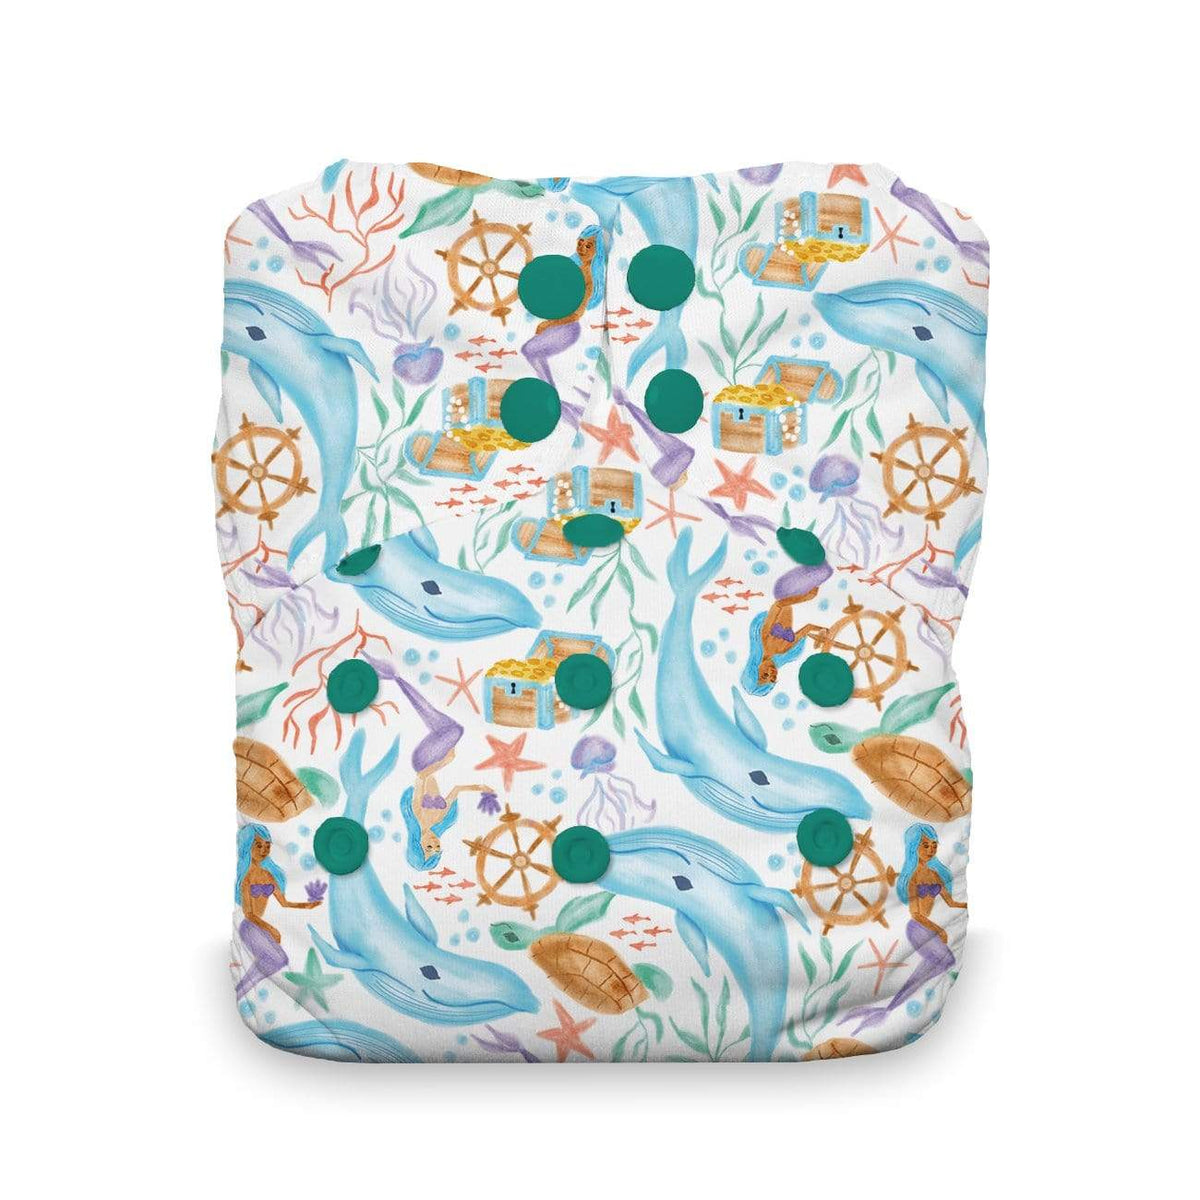 Thirsties Stay Dry Natural Snap One Size All in One Diaper - Mermaid Lagoon